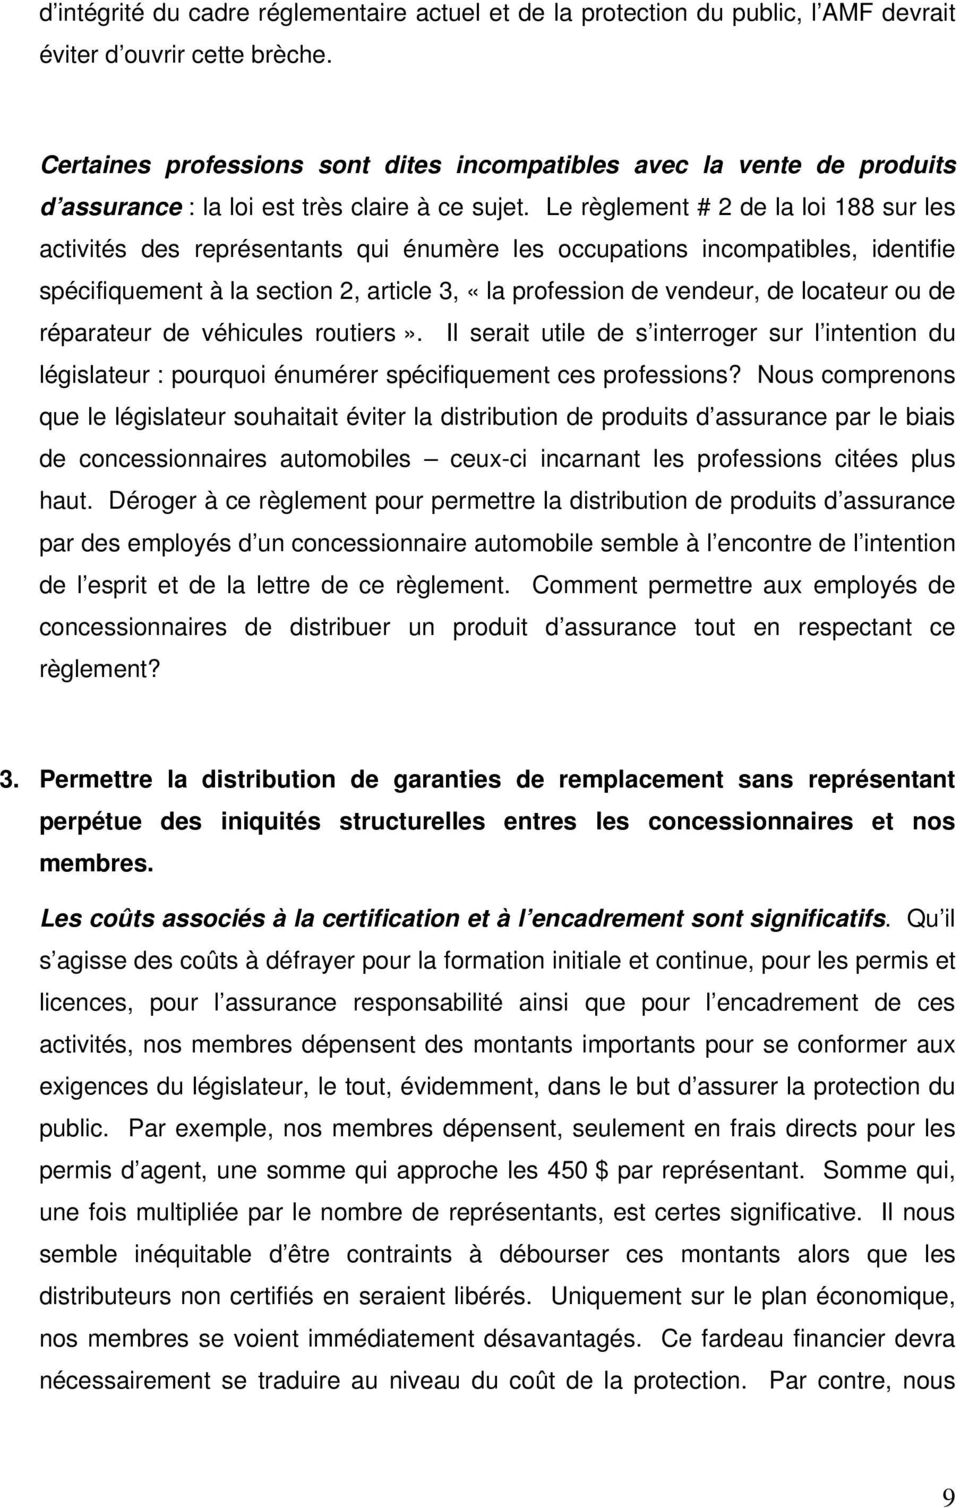 Le règlement # 2 de la loi 188 sur les activités des représentants qui énumère les occupations incompatibles, identifie spécifiquement à la section 2, article 3, «la profession de vendeur, de